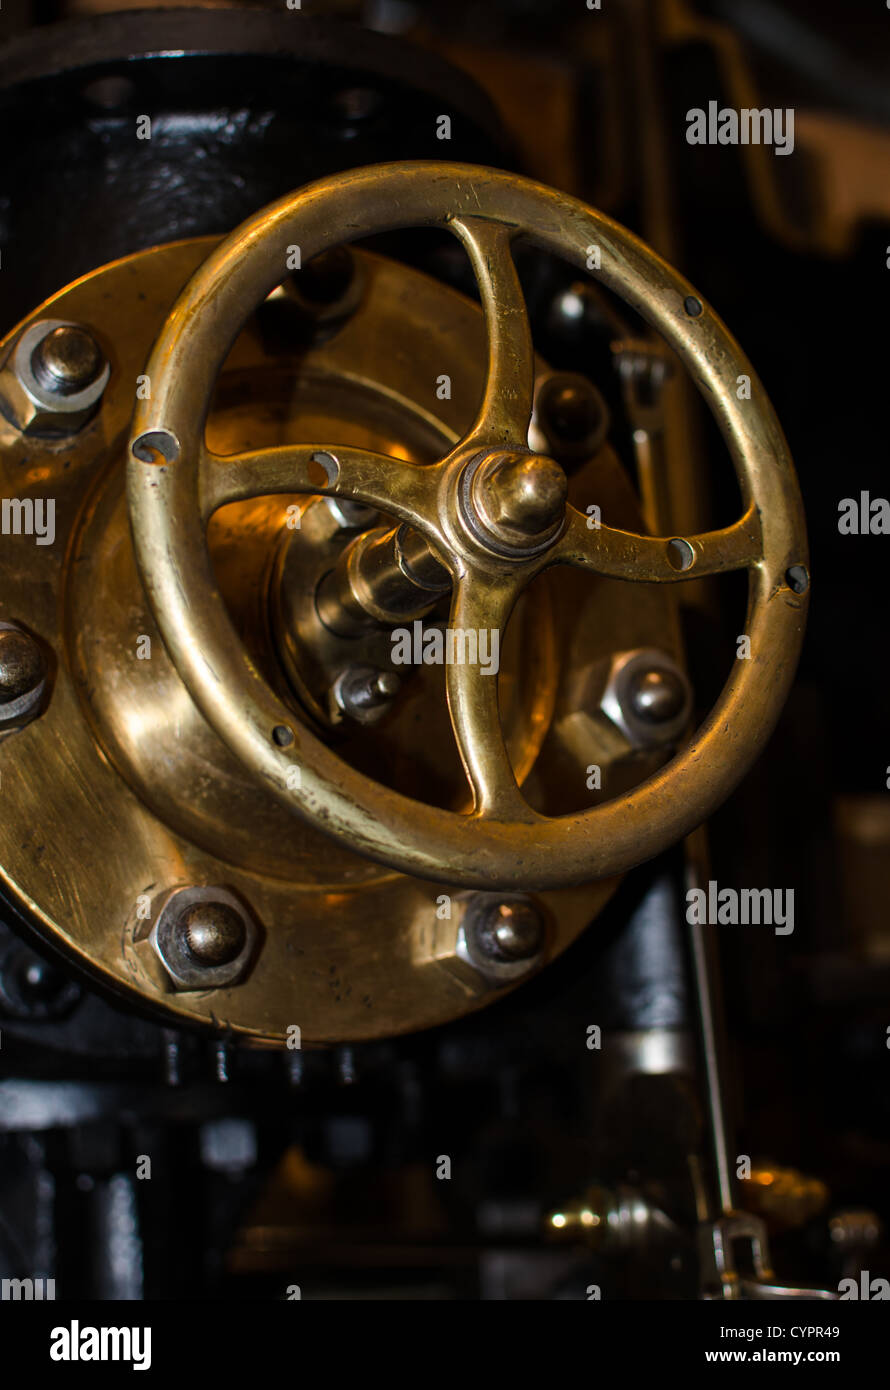 detail of an old machine, valve with control wheel Stock Photo